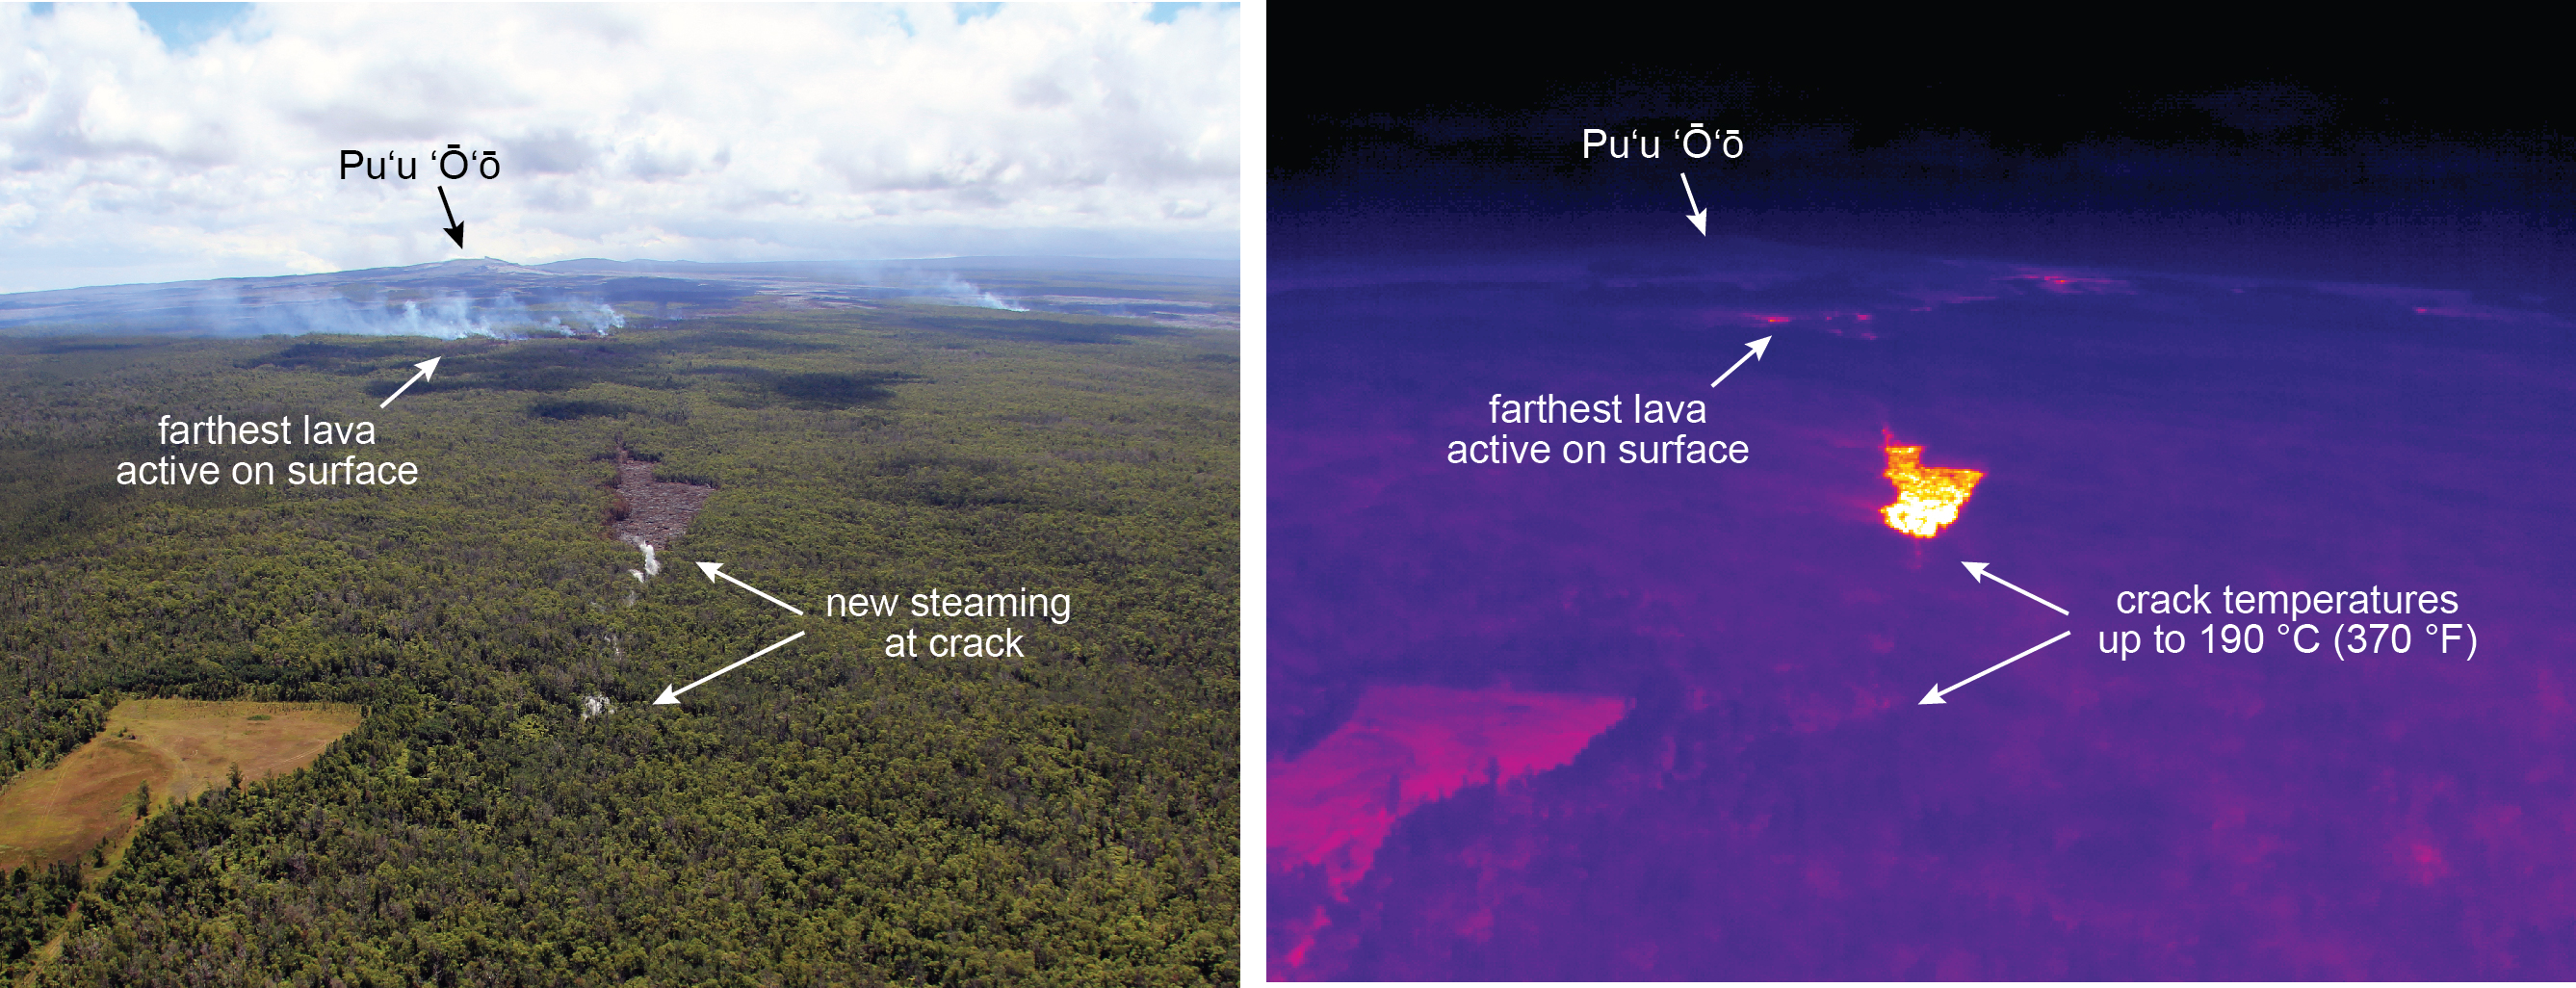 This photograph (left) and thermal image (right) of the June 27th lava flow were taken at the same time on August 28, 2014. Distant plumes of blue smoke mark the farthest active surface lava, which is also shown as small hot spots in the thermal image. The bright yellow patch in the center of the thermal image shows the pad of still-hot, but inactive, lava that emerged from a ground crack earlier this week. East of this lava pad, new steaming (shown by arrows) suggests that lava is continuing to advance below the surface along a ground crack. Direct views into the crack were not possible due to thick vegetation, but thermal images of the steaming areas revealed temperatures up to 190 degrees Celsius (370 degrees Fahrenheit), further evidence of lava moving through the crack. The most recent map of the June 27th flow is posted at http://hvo.wr.usgs.gov/maps/.  USGS images.